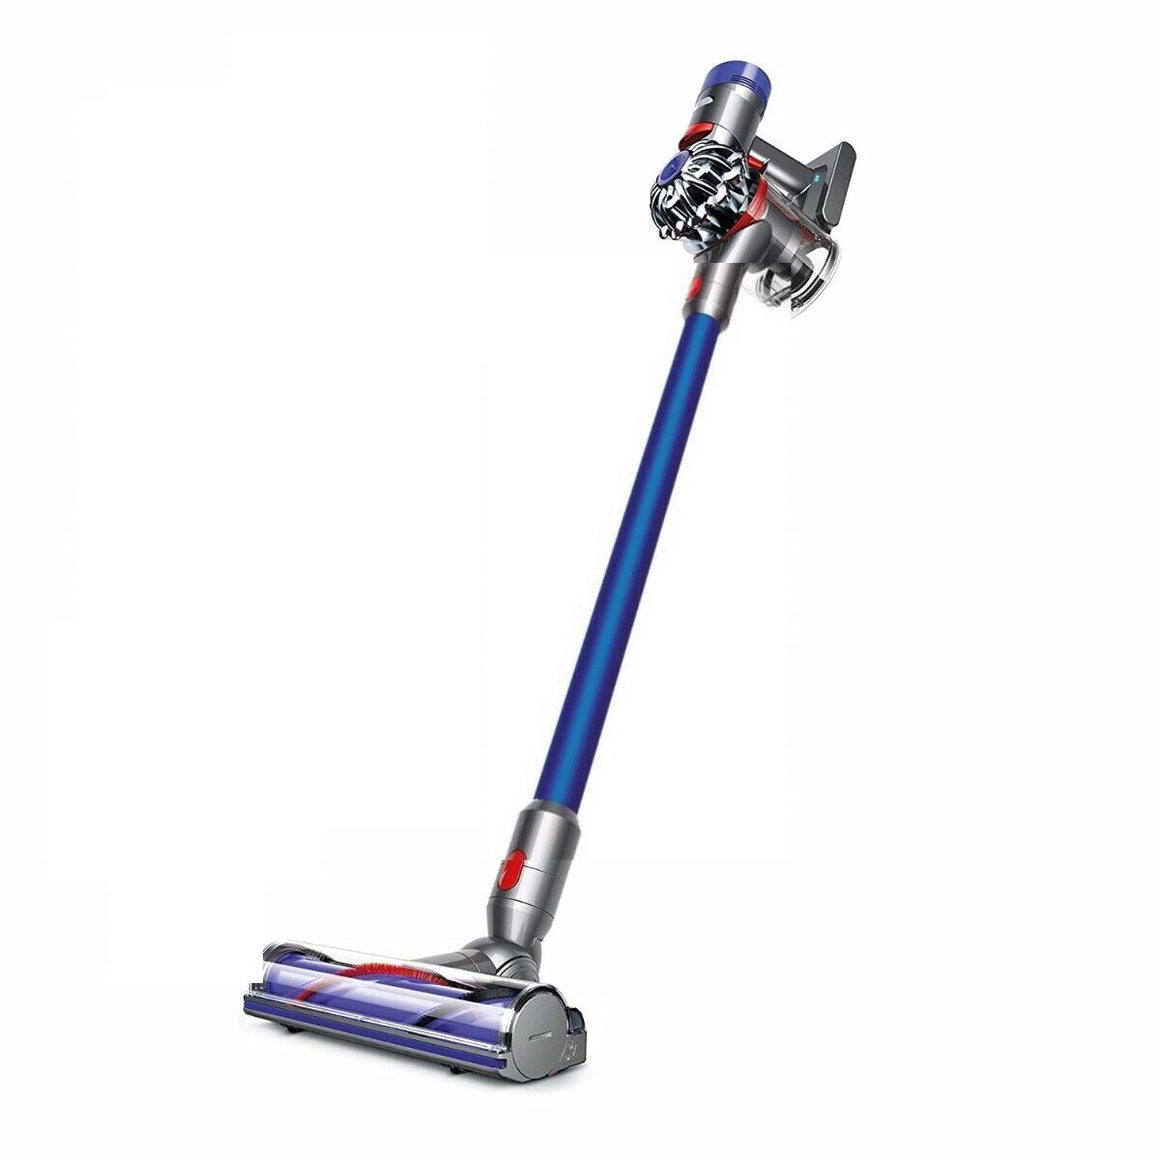 Dyson V8 Absolute Cordless Stick Vacuum Cleaner, Blue (Refurbished)